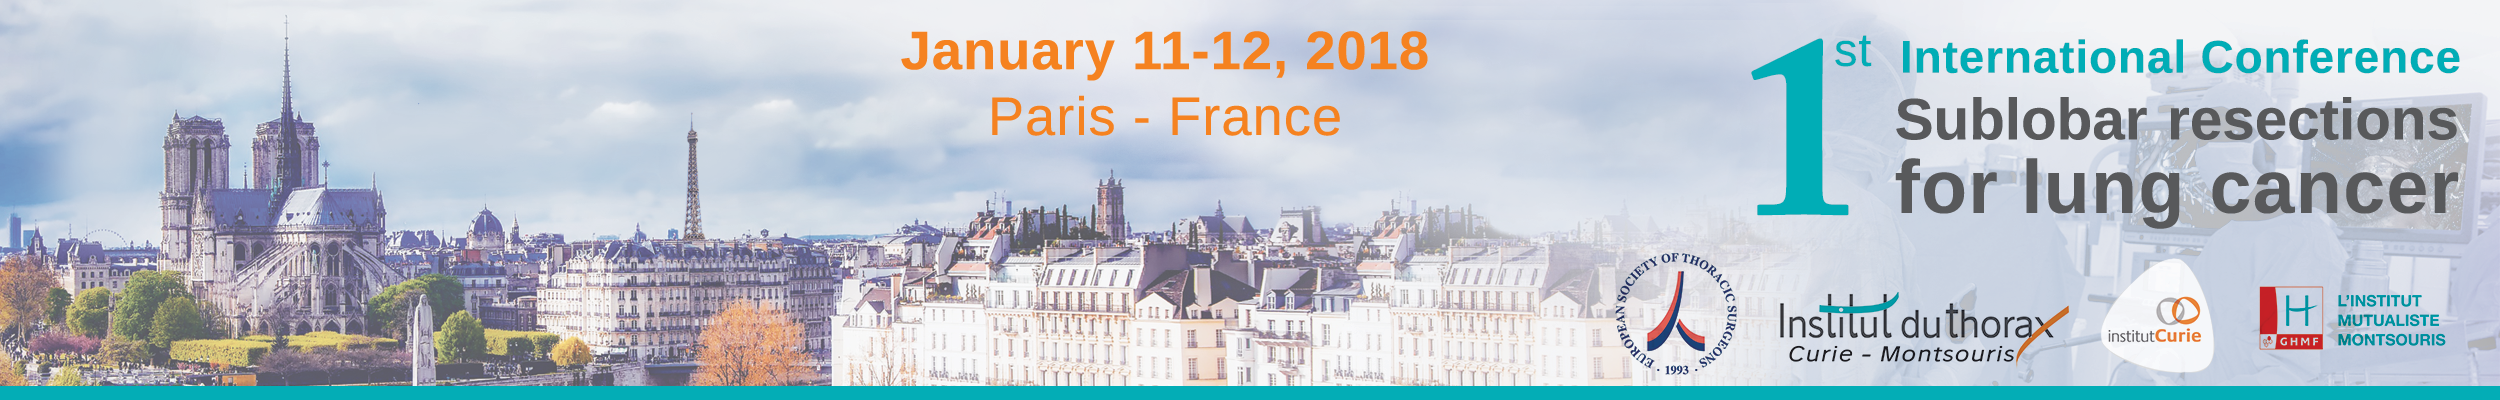 1st International Conference Sublobar resections for lung cancer, 2018 - Banner